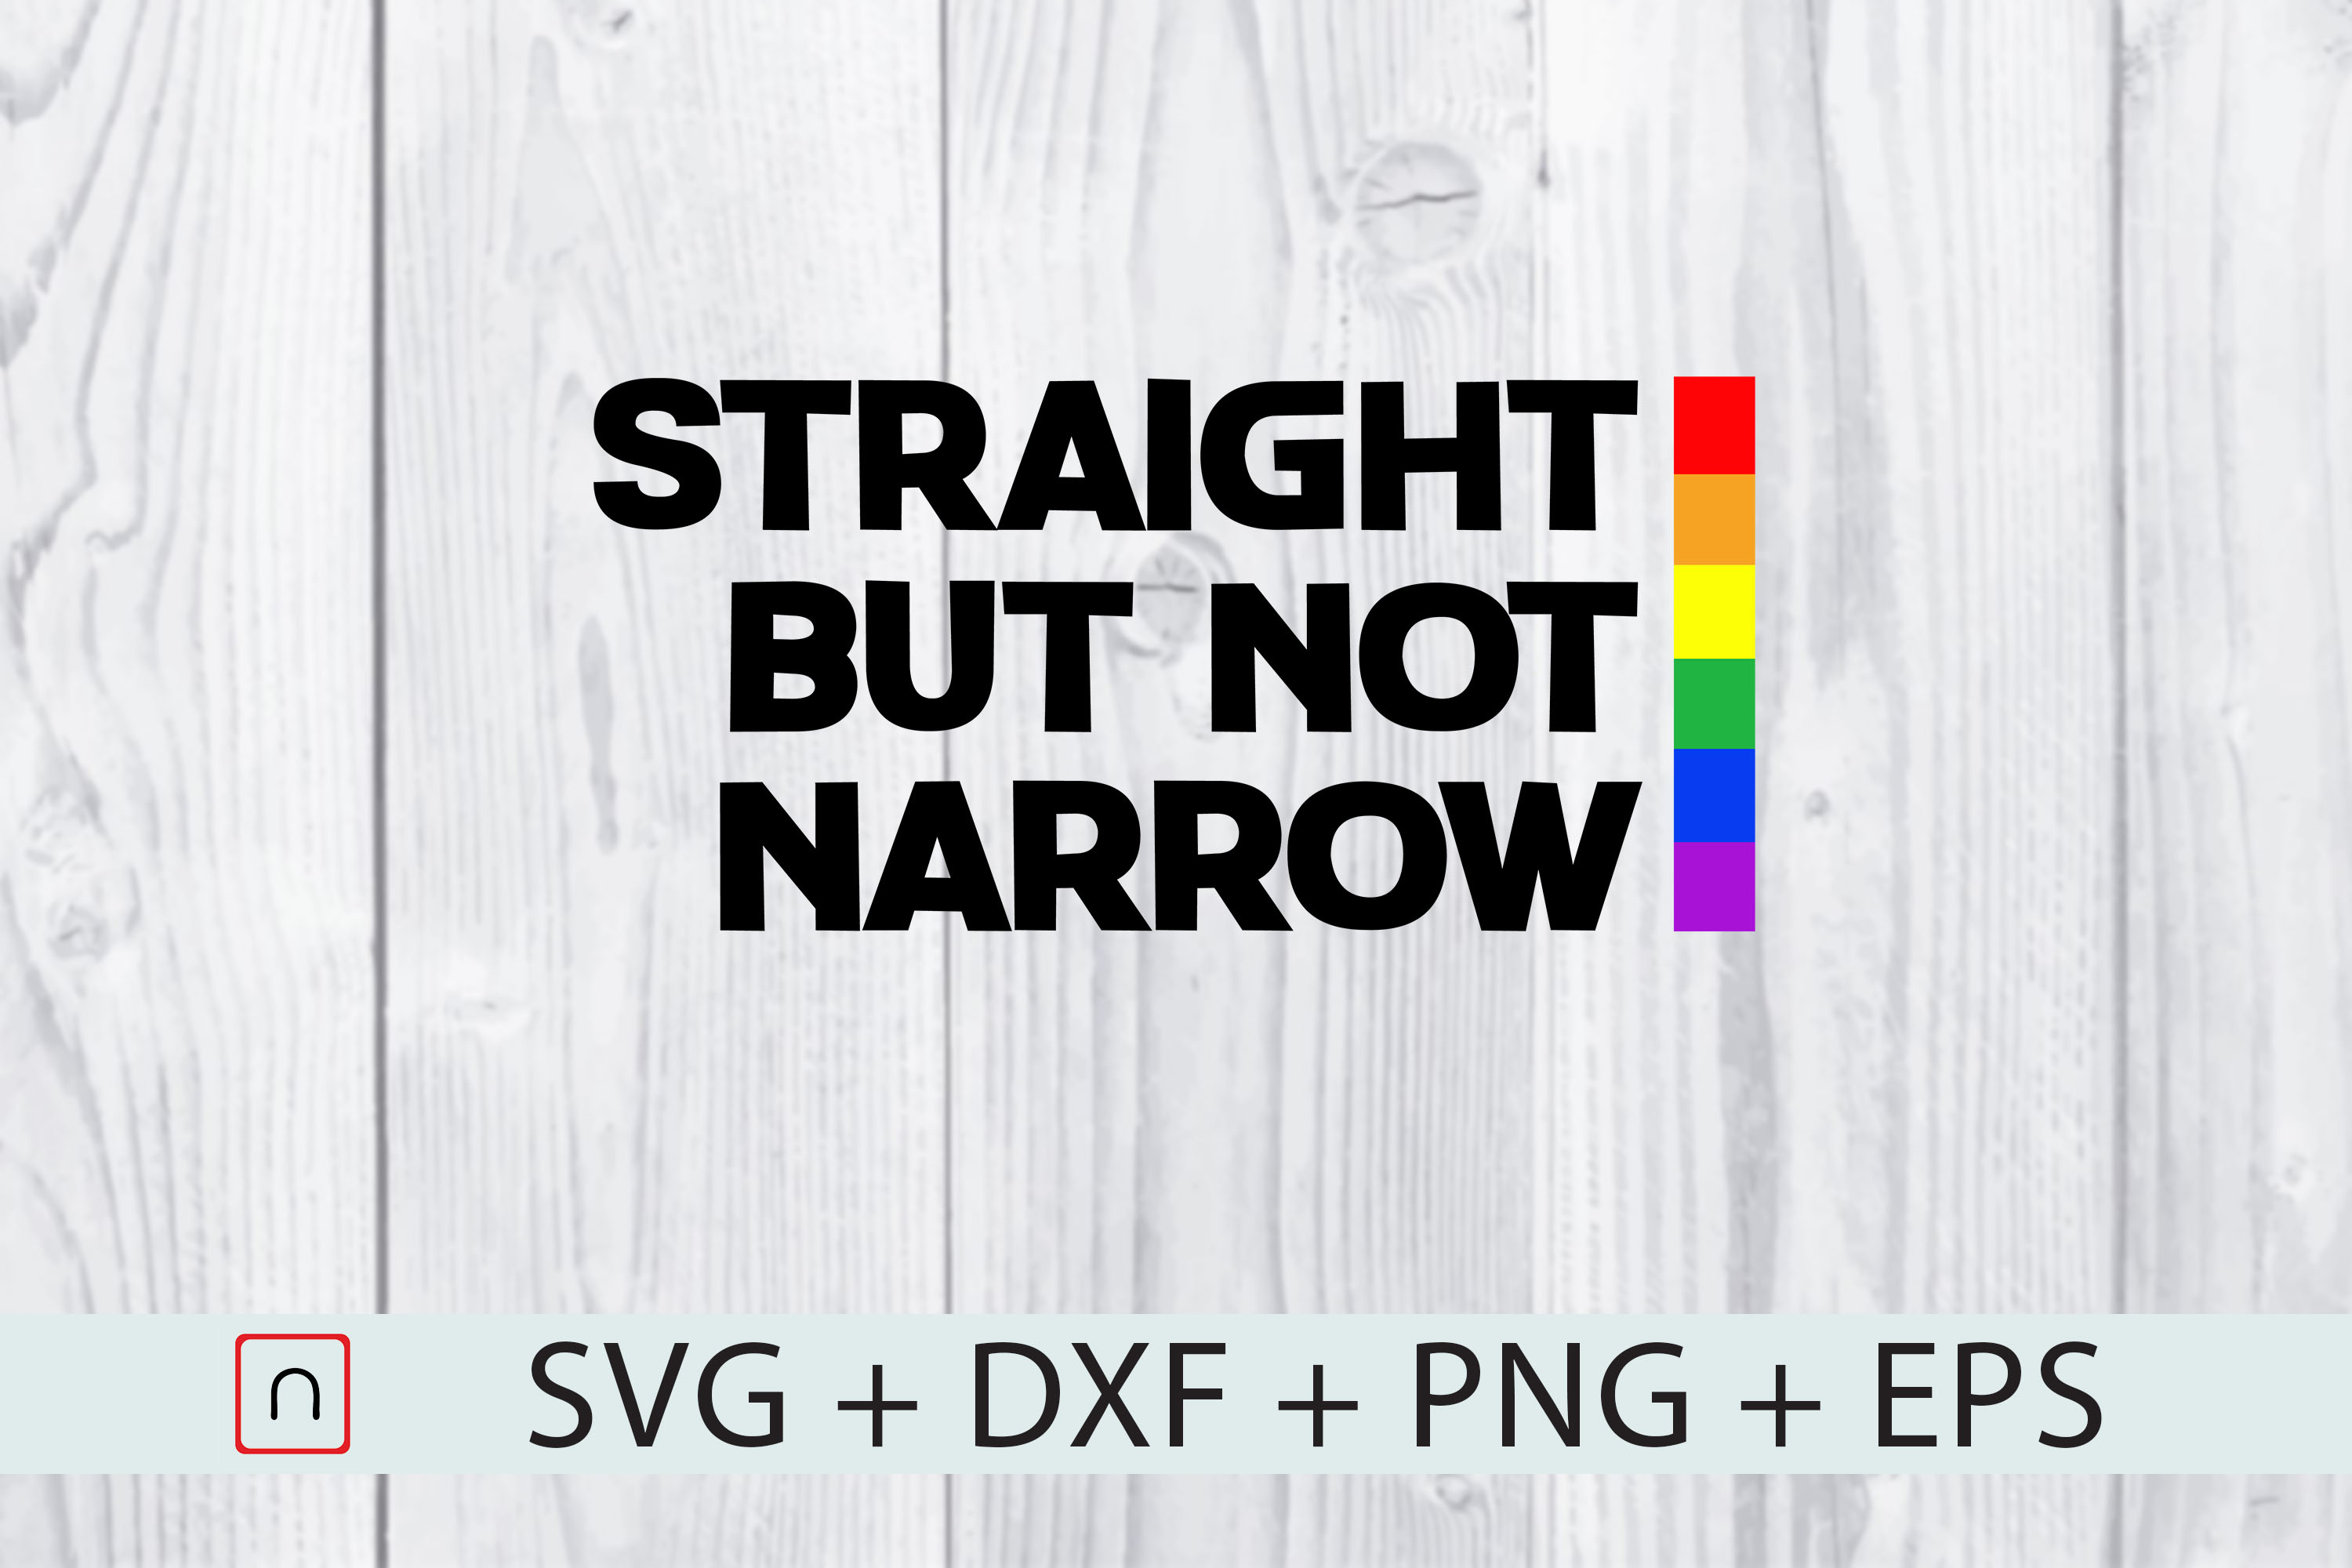 Download Free Straight Not Narrow Lgbtq Cricut Graphic By Novalia Creative for Cricut Explore, Silhouette and other cutting machines.